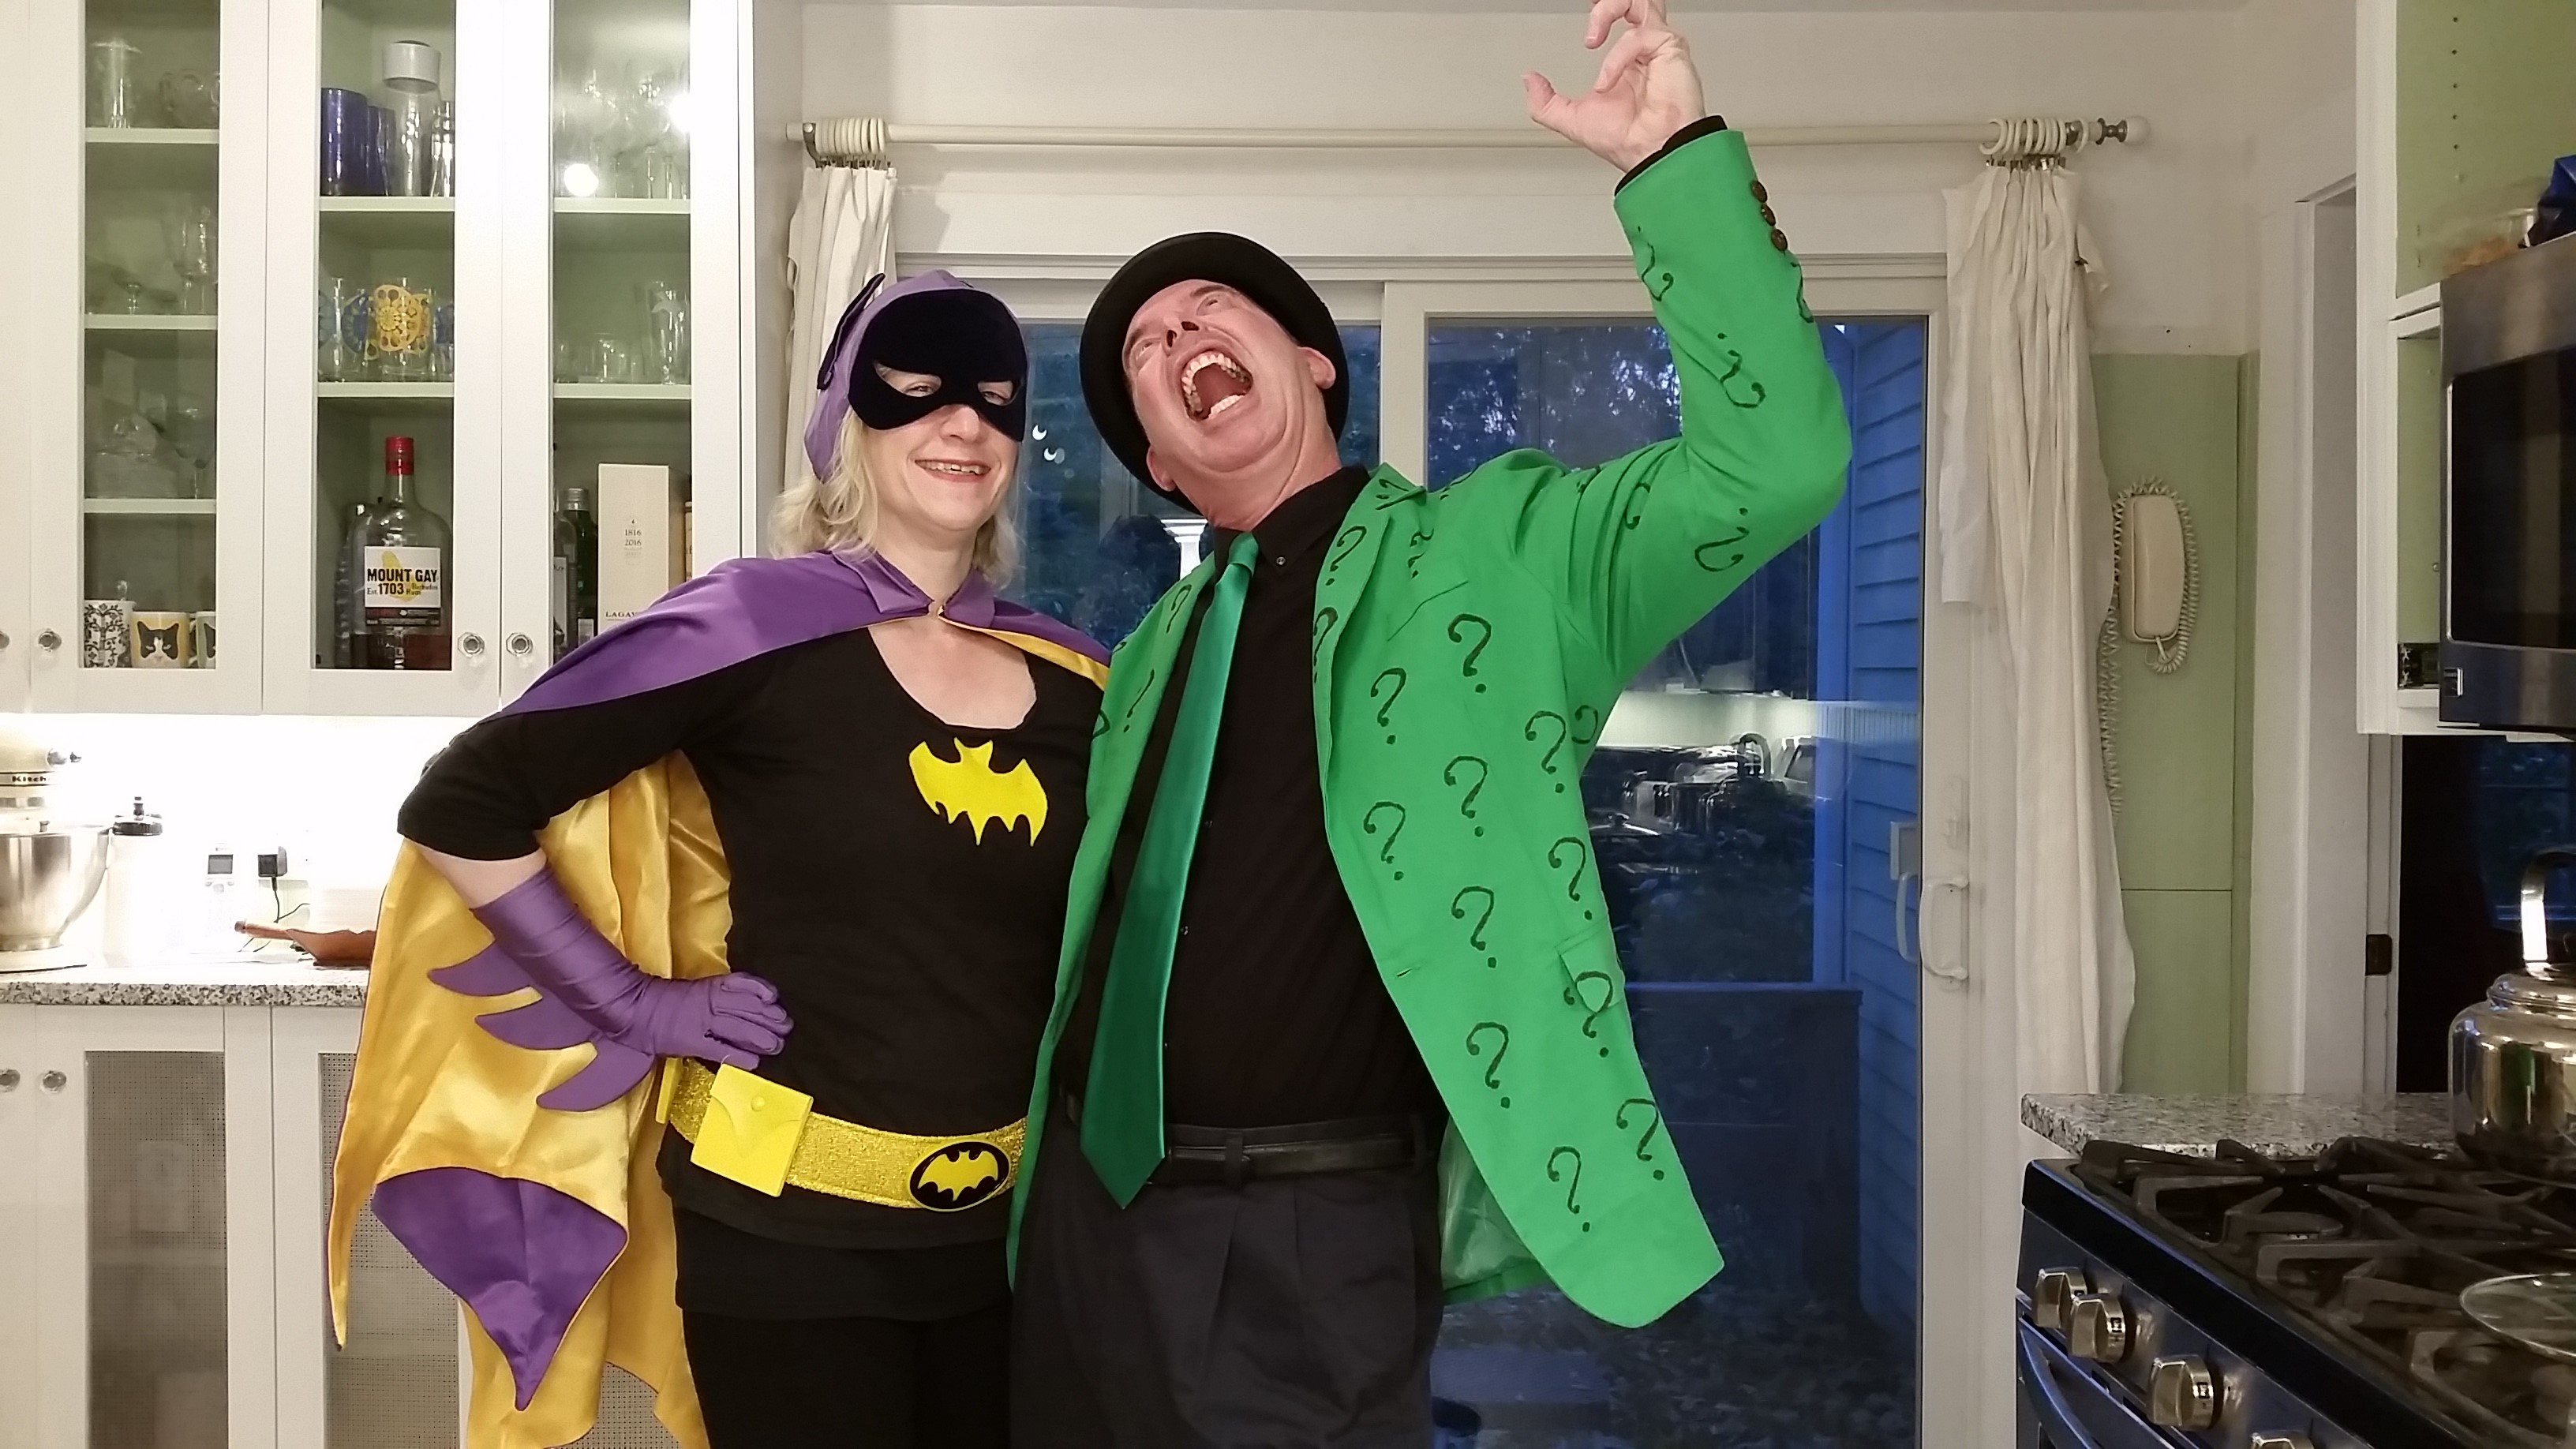 Abby Kingsbury dressed as Batgirl and her husband dressed as The Riddler